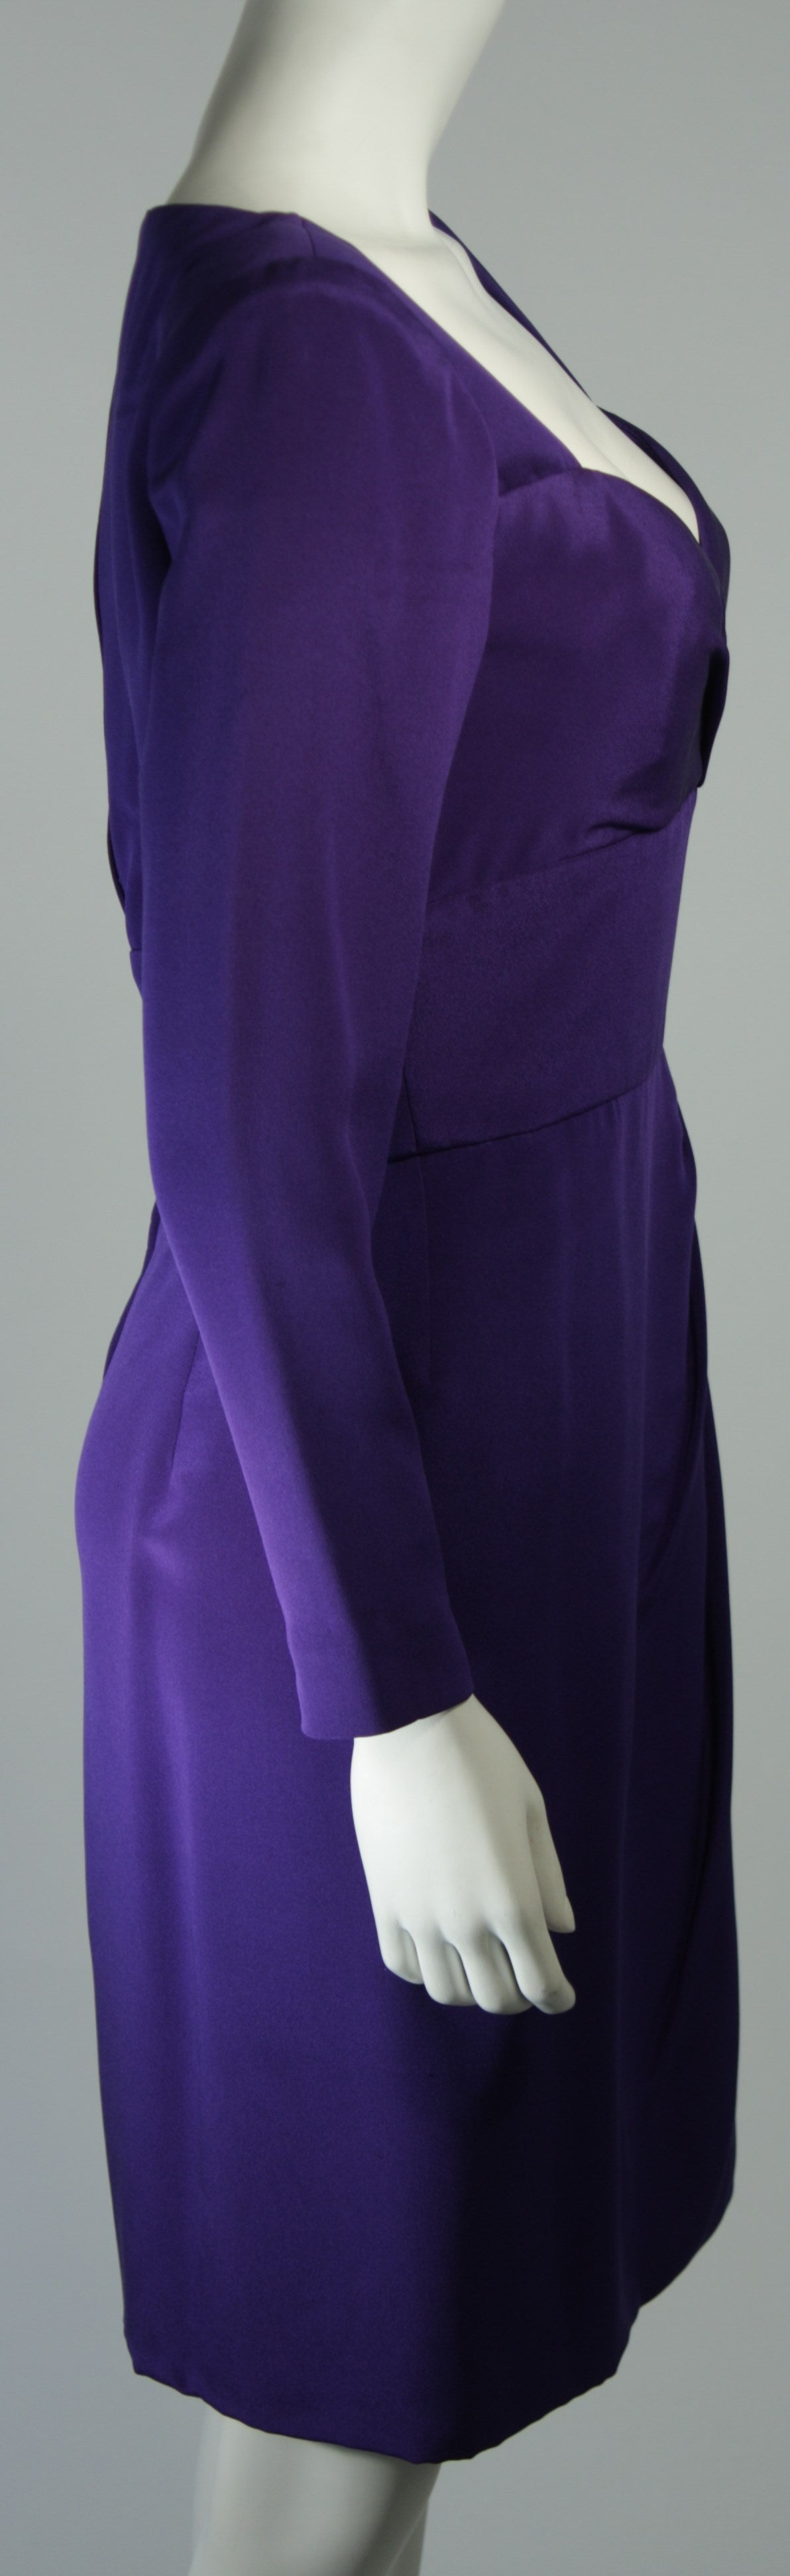 Travilla Purple Silk Long Sleeve Cocktail Dress with Draping Size 8 For Sale 3